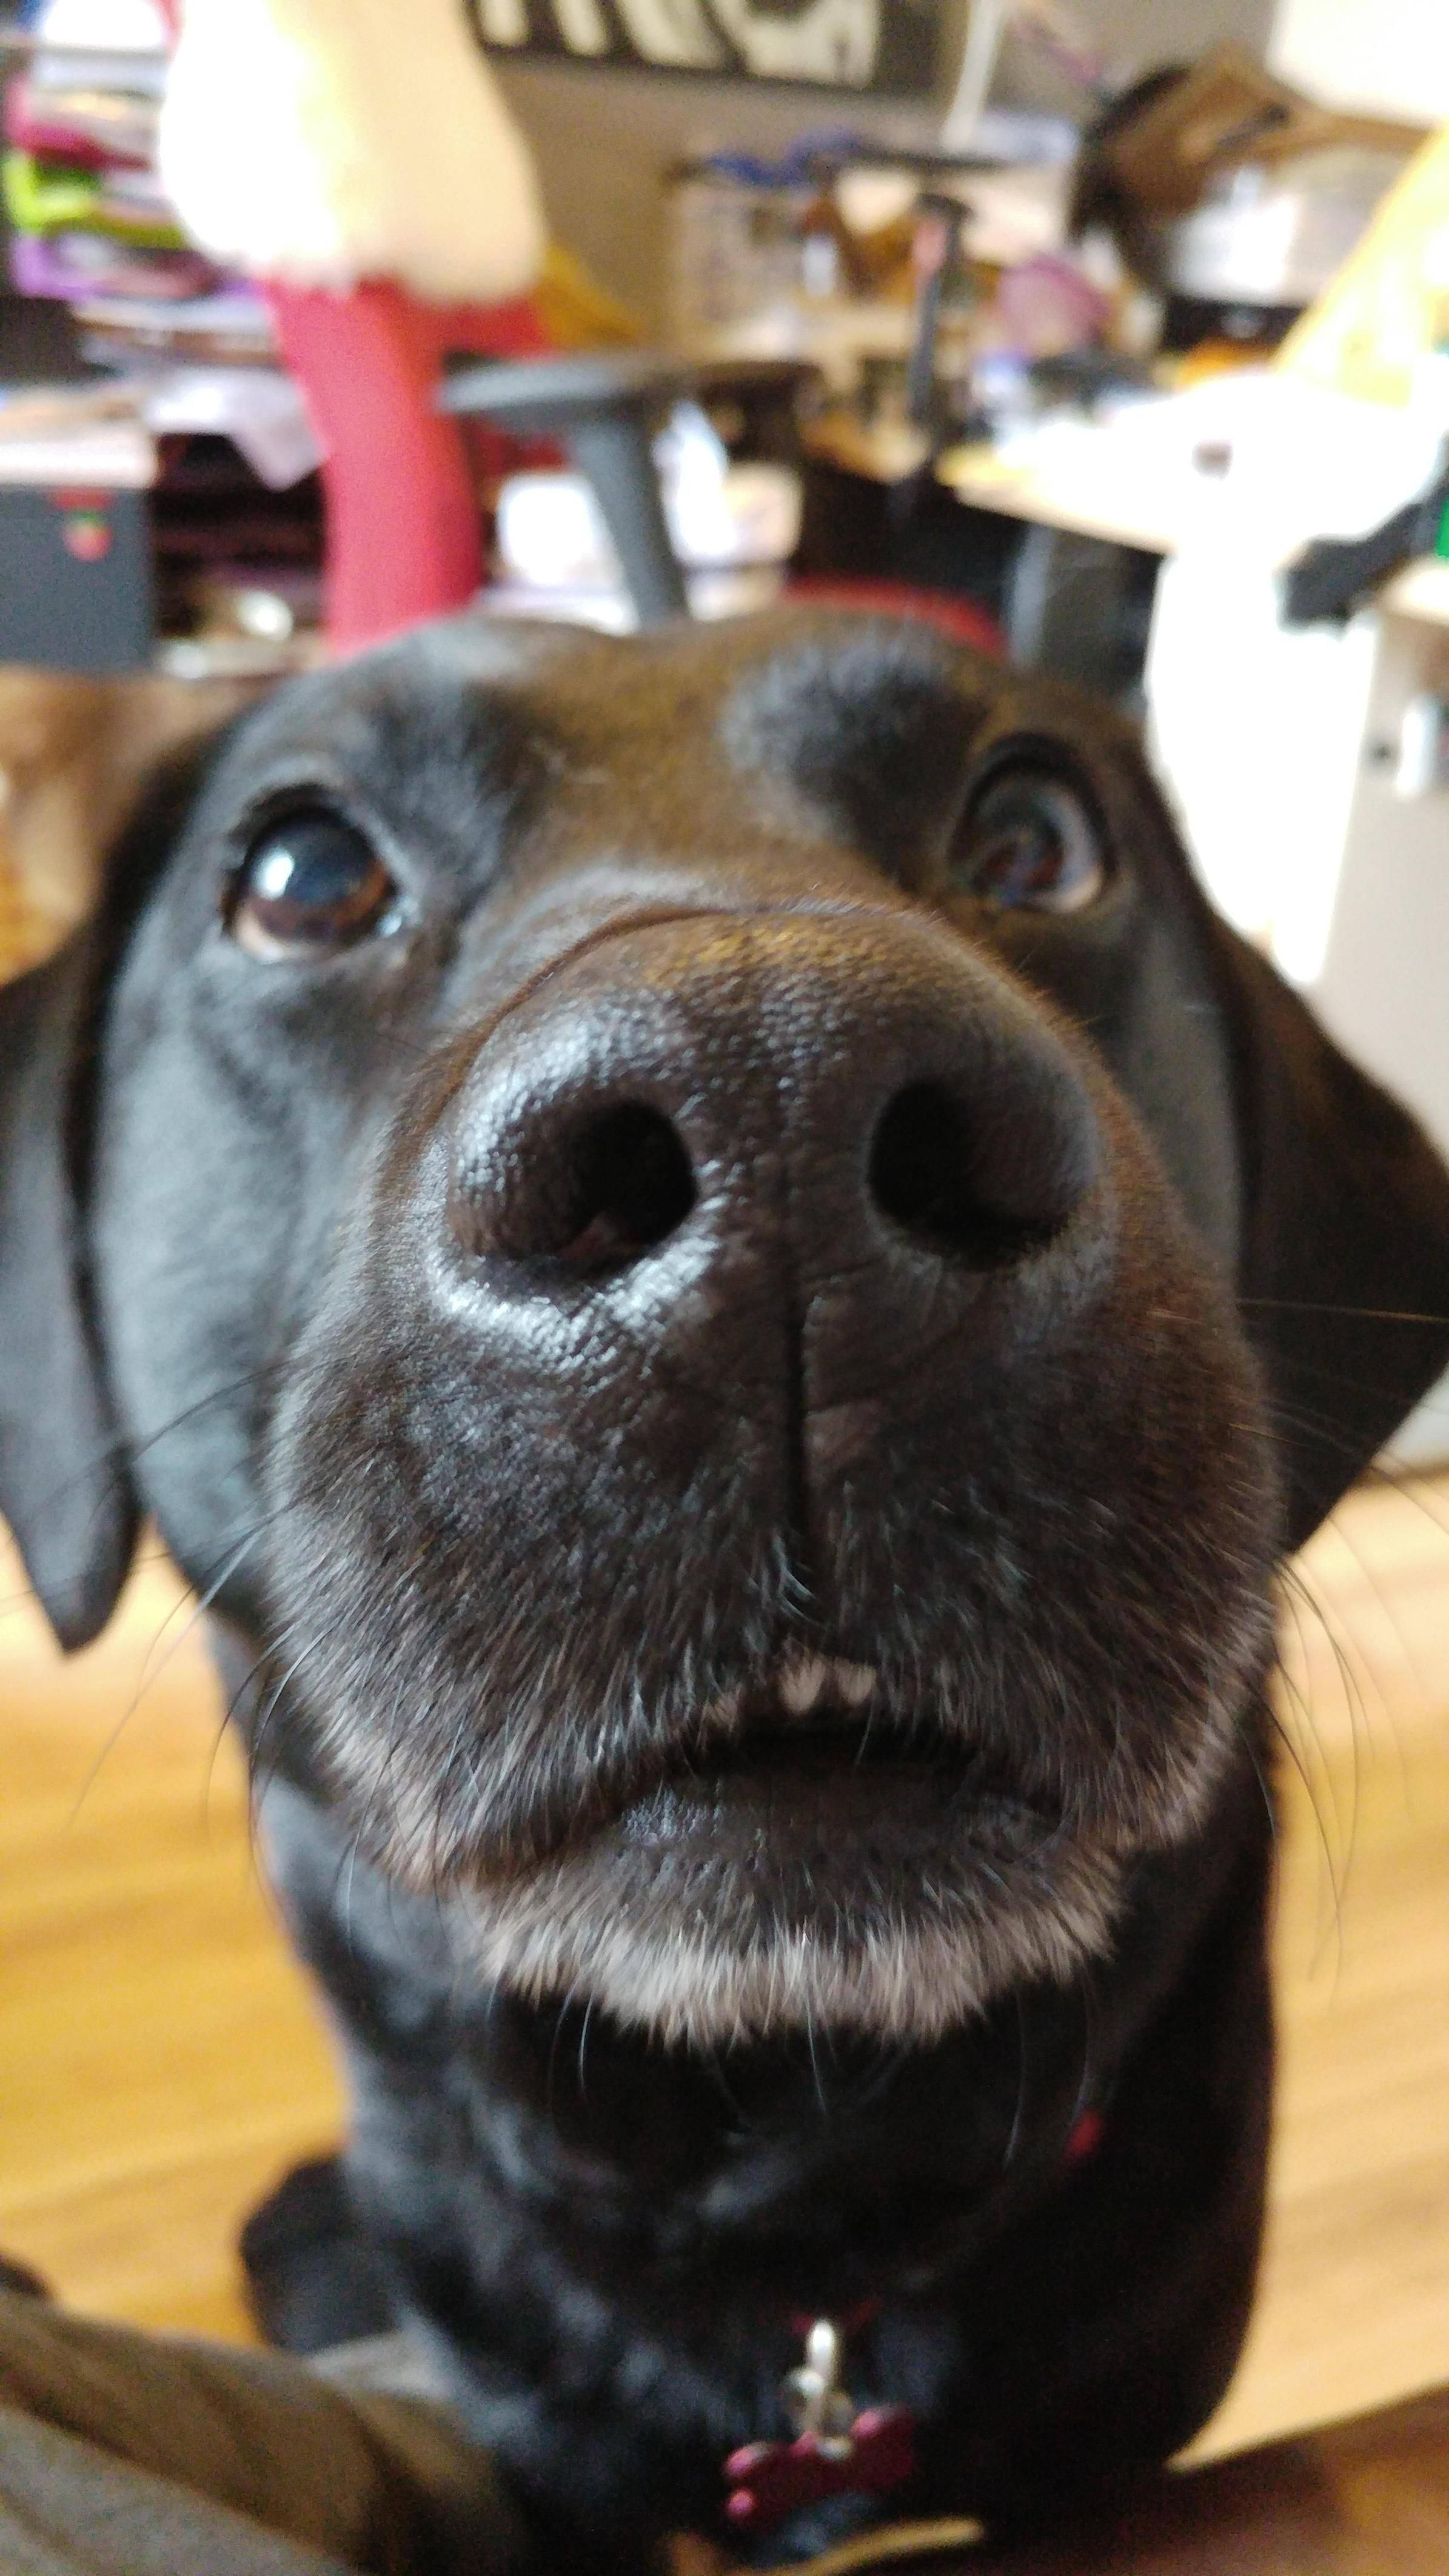 Discovered that a little dab of something edible just above the camera produces some wonderful photos!   http://ift.tt/1qwWs9B via /r/dogpictures http://ift.tt/20bpmbt  IFTTT reddit